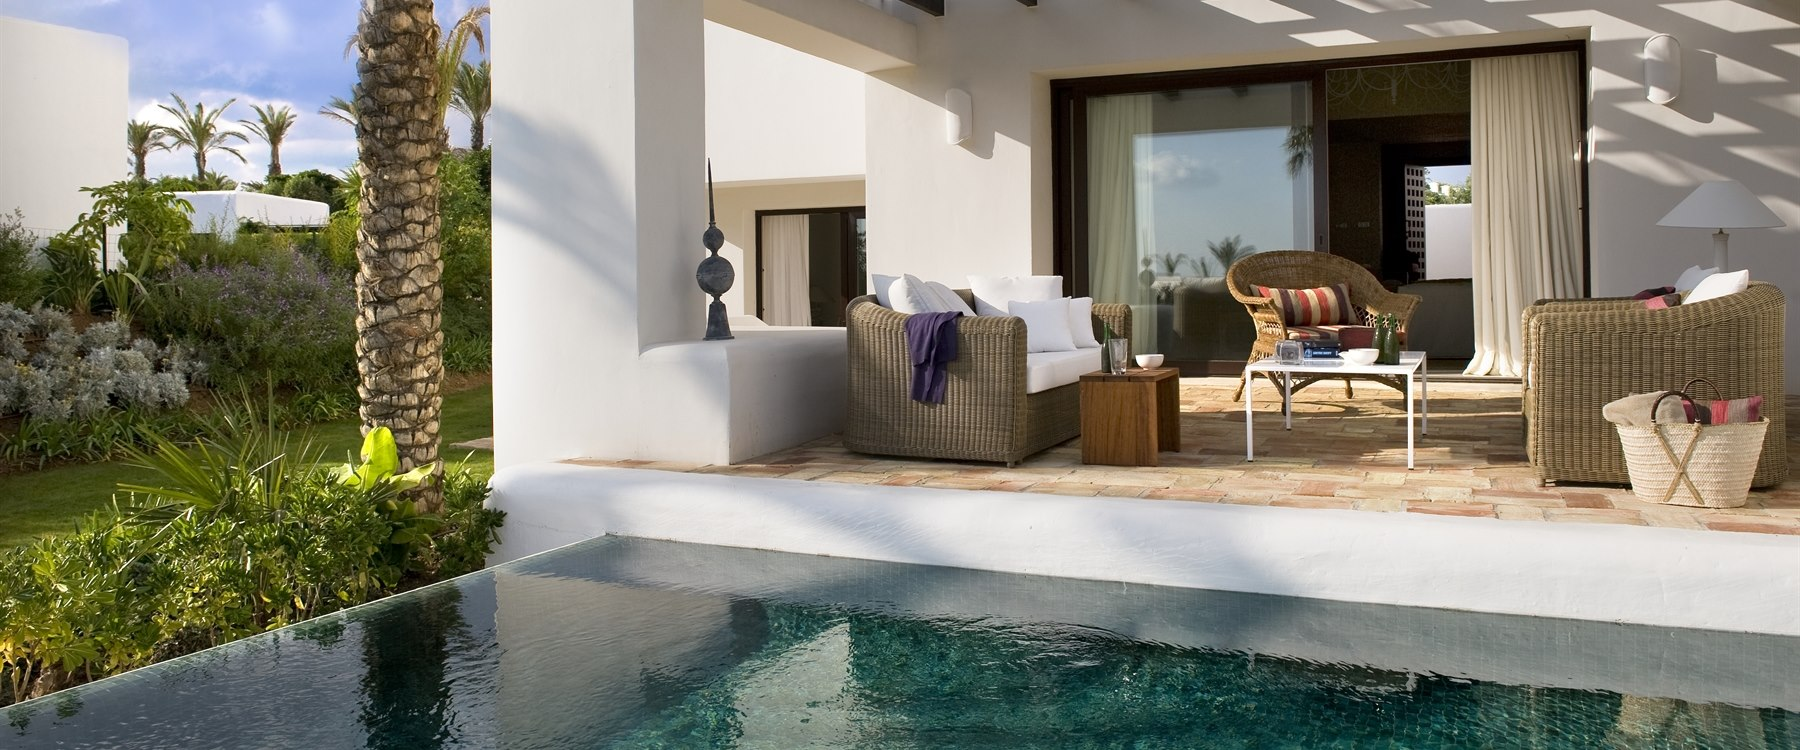 Pool villa at Finca Cortesin, Costa del Sol